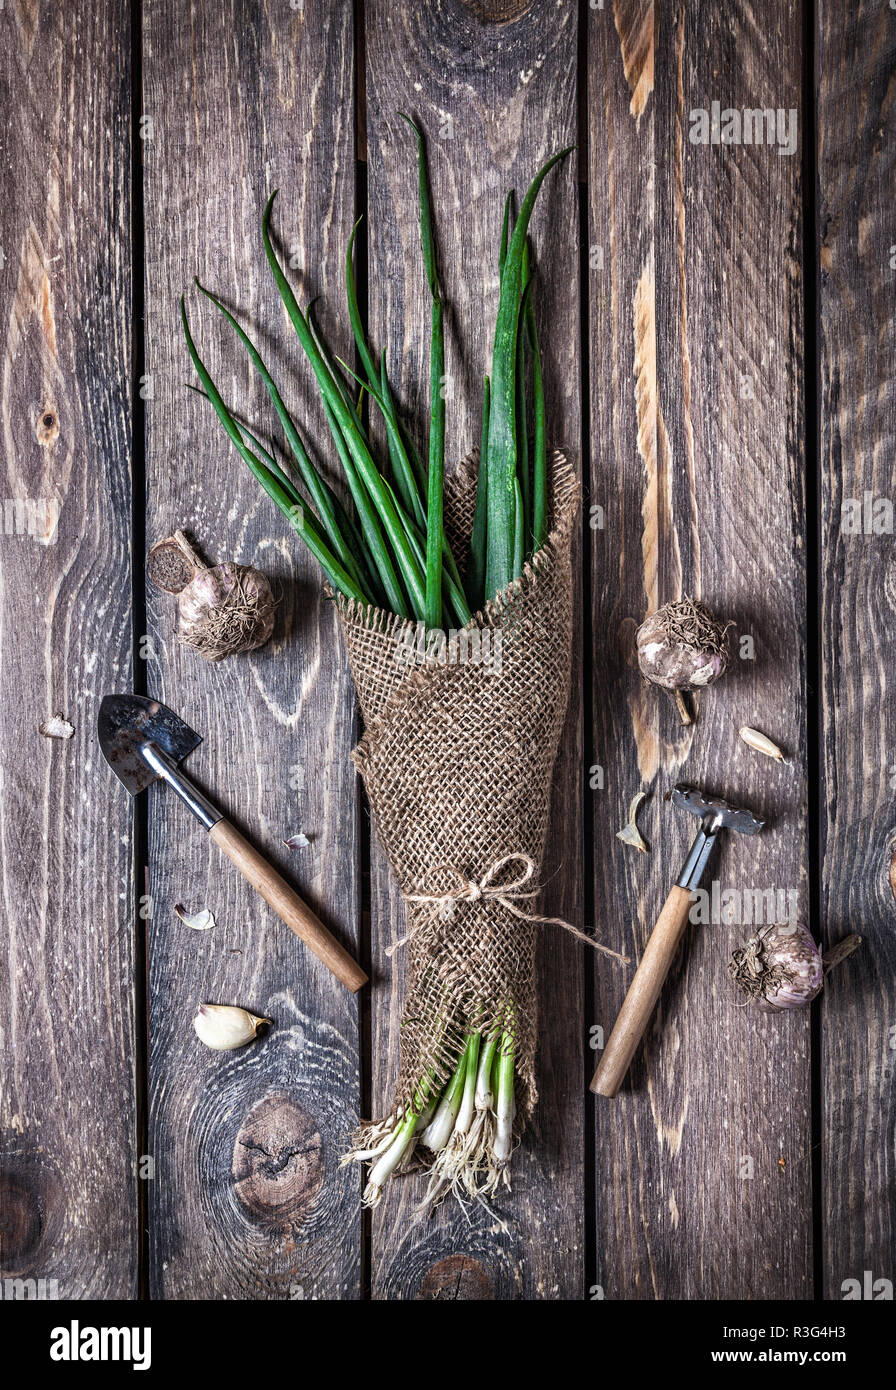 Raw green onion in sackcloth and garden tools nearby on wooden table Stock Photo